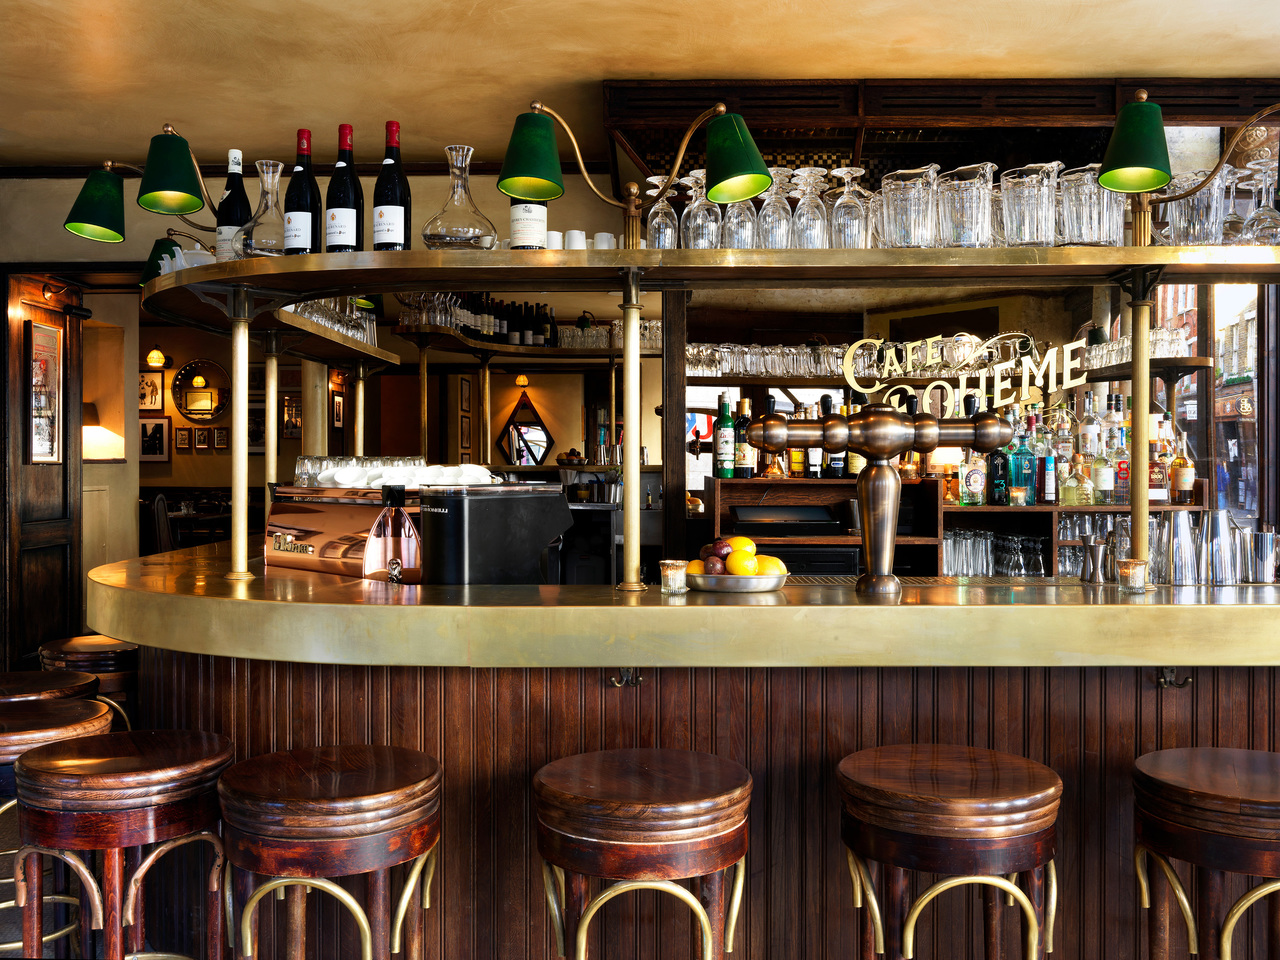 A wood and brass bar with wooden bar stools